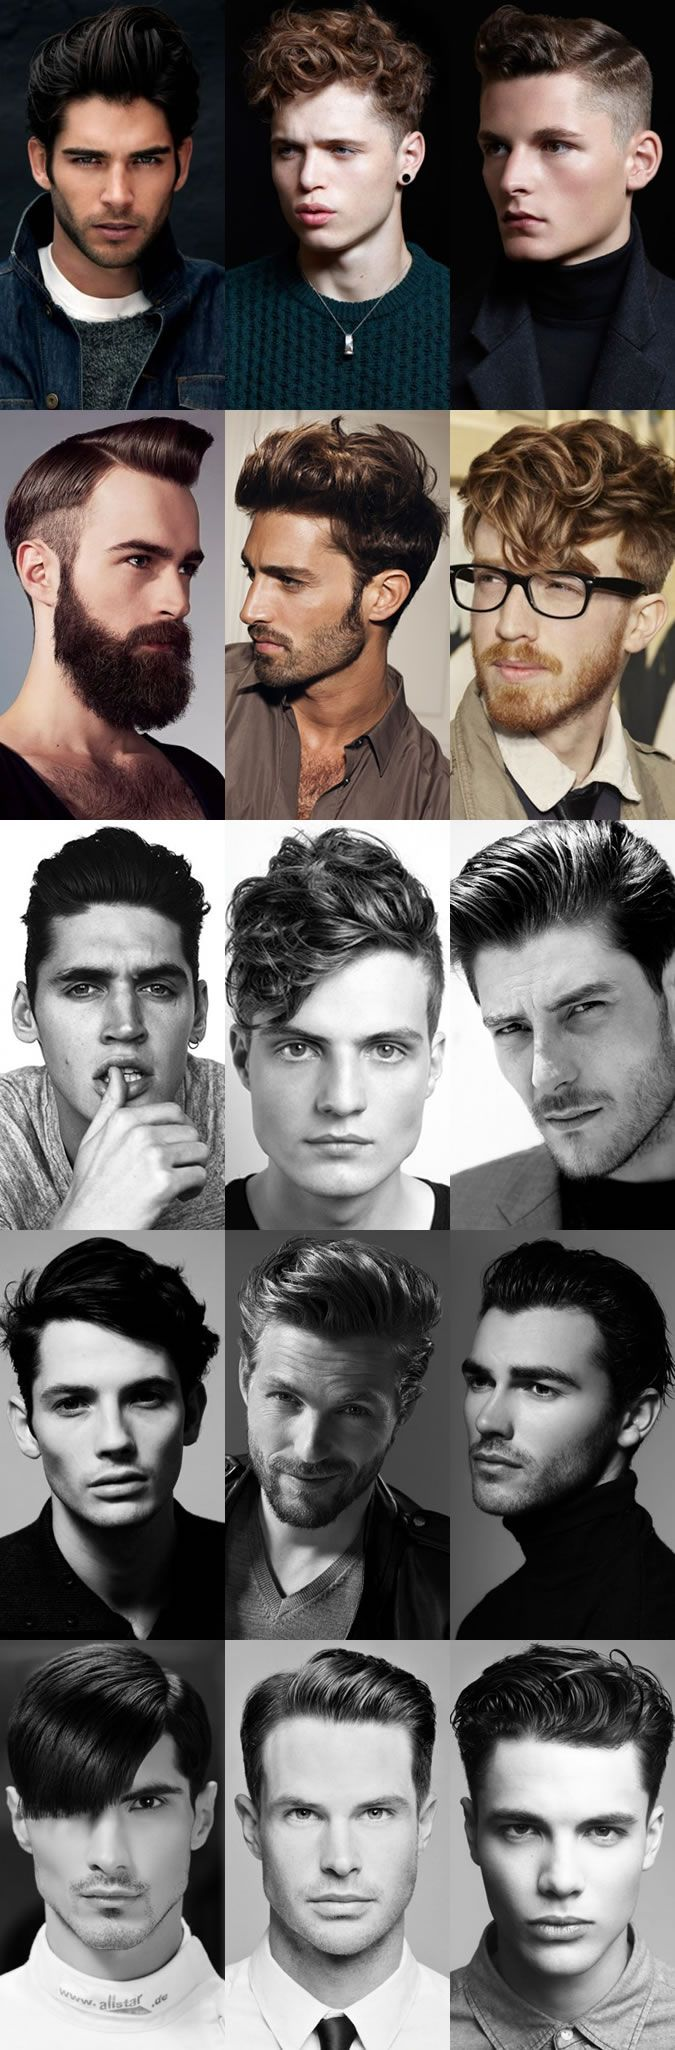 #veronahair #hair <3http://www.panasonic.com/in/consumer/beauty-care/male-grooming/trimmers.html